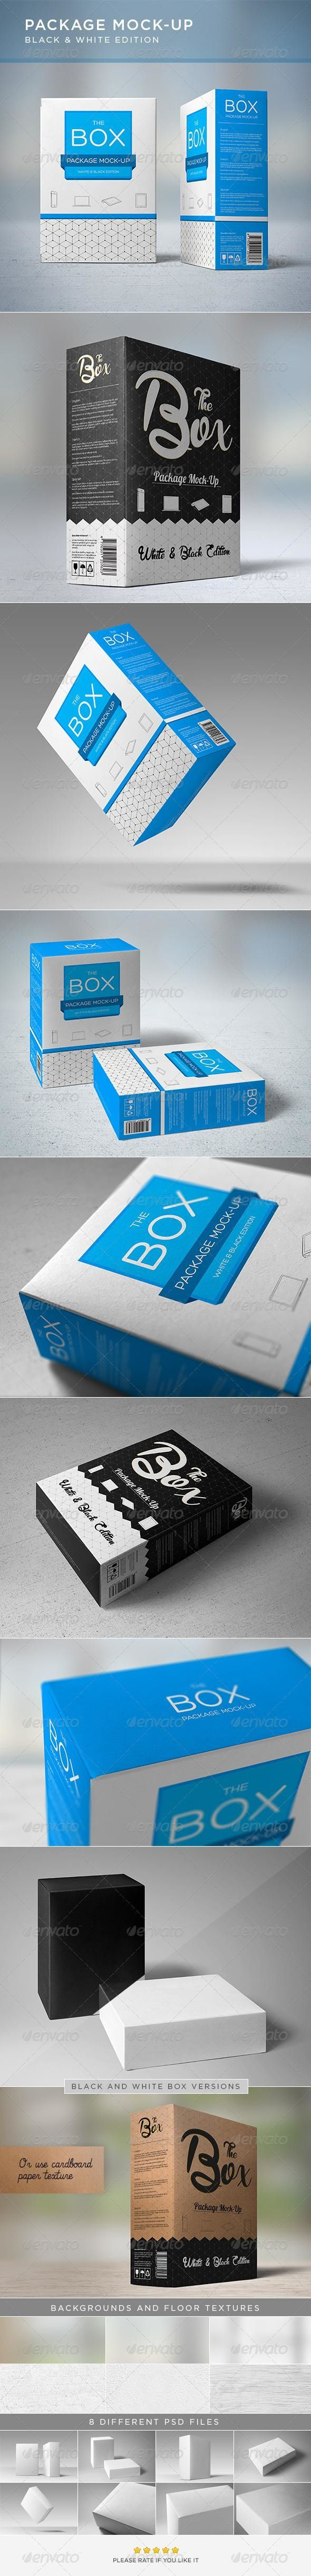 Package Mock-Up   Packaging template design, Graphic ...